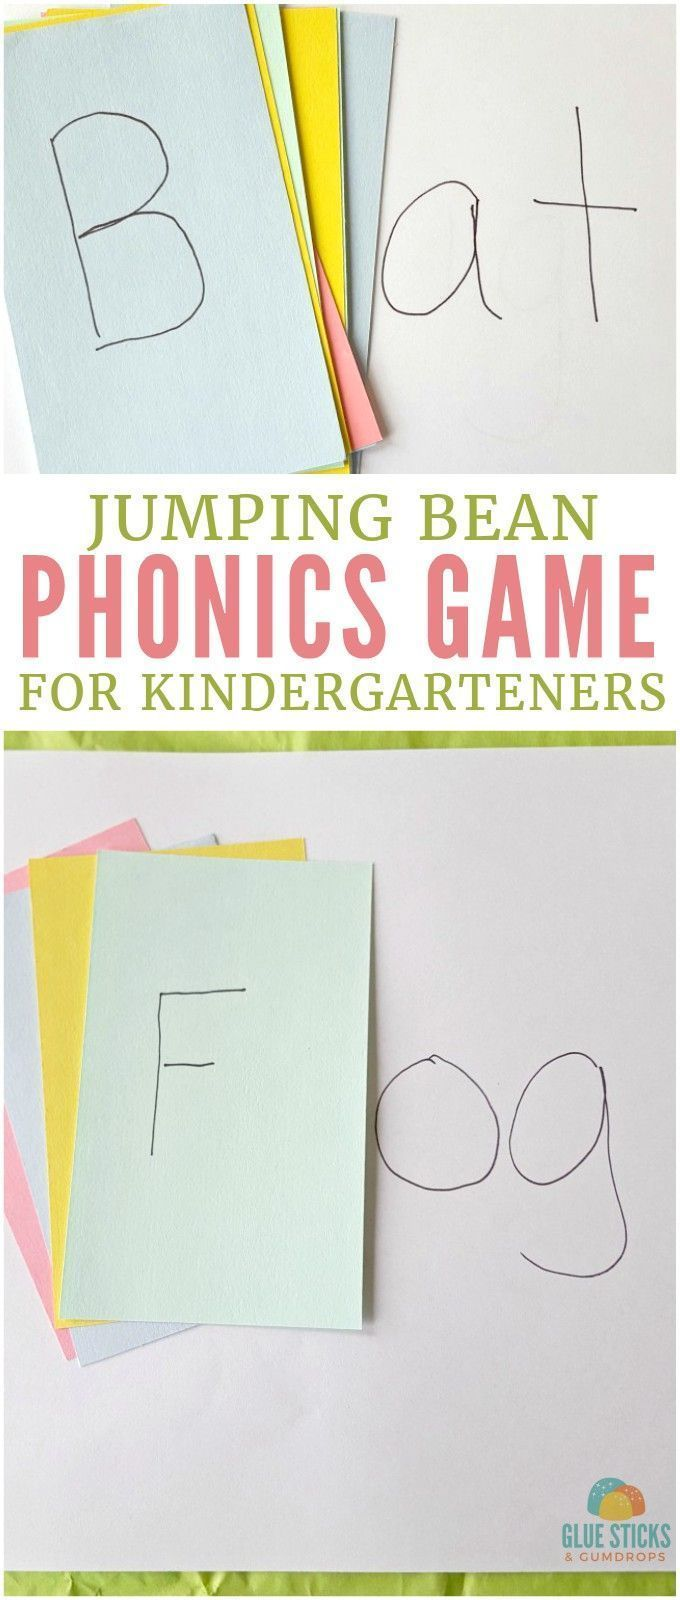 Teach your kids to spell and say simple words with this fun jumping bean phonics game for kindergarteners!